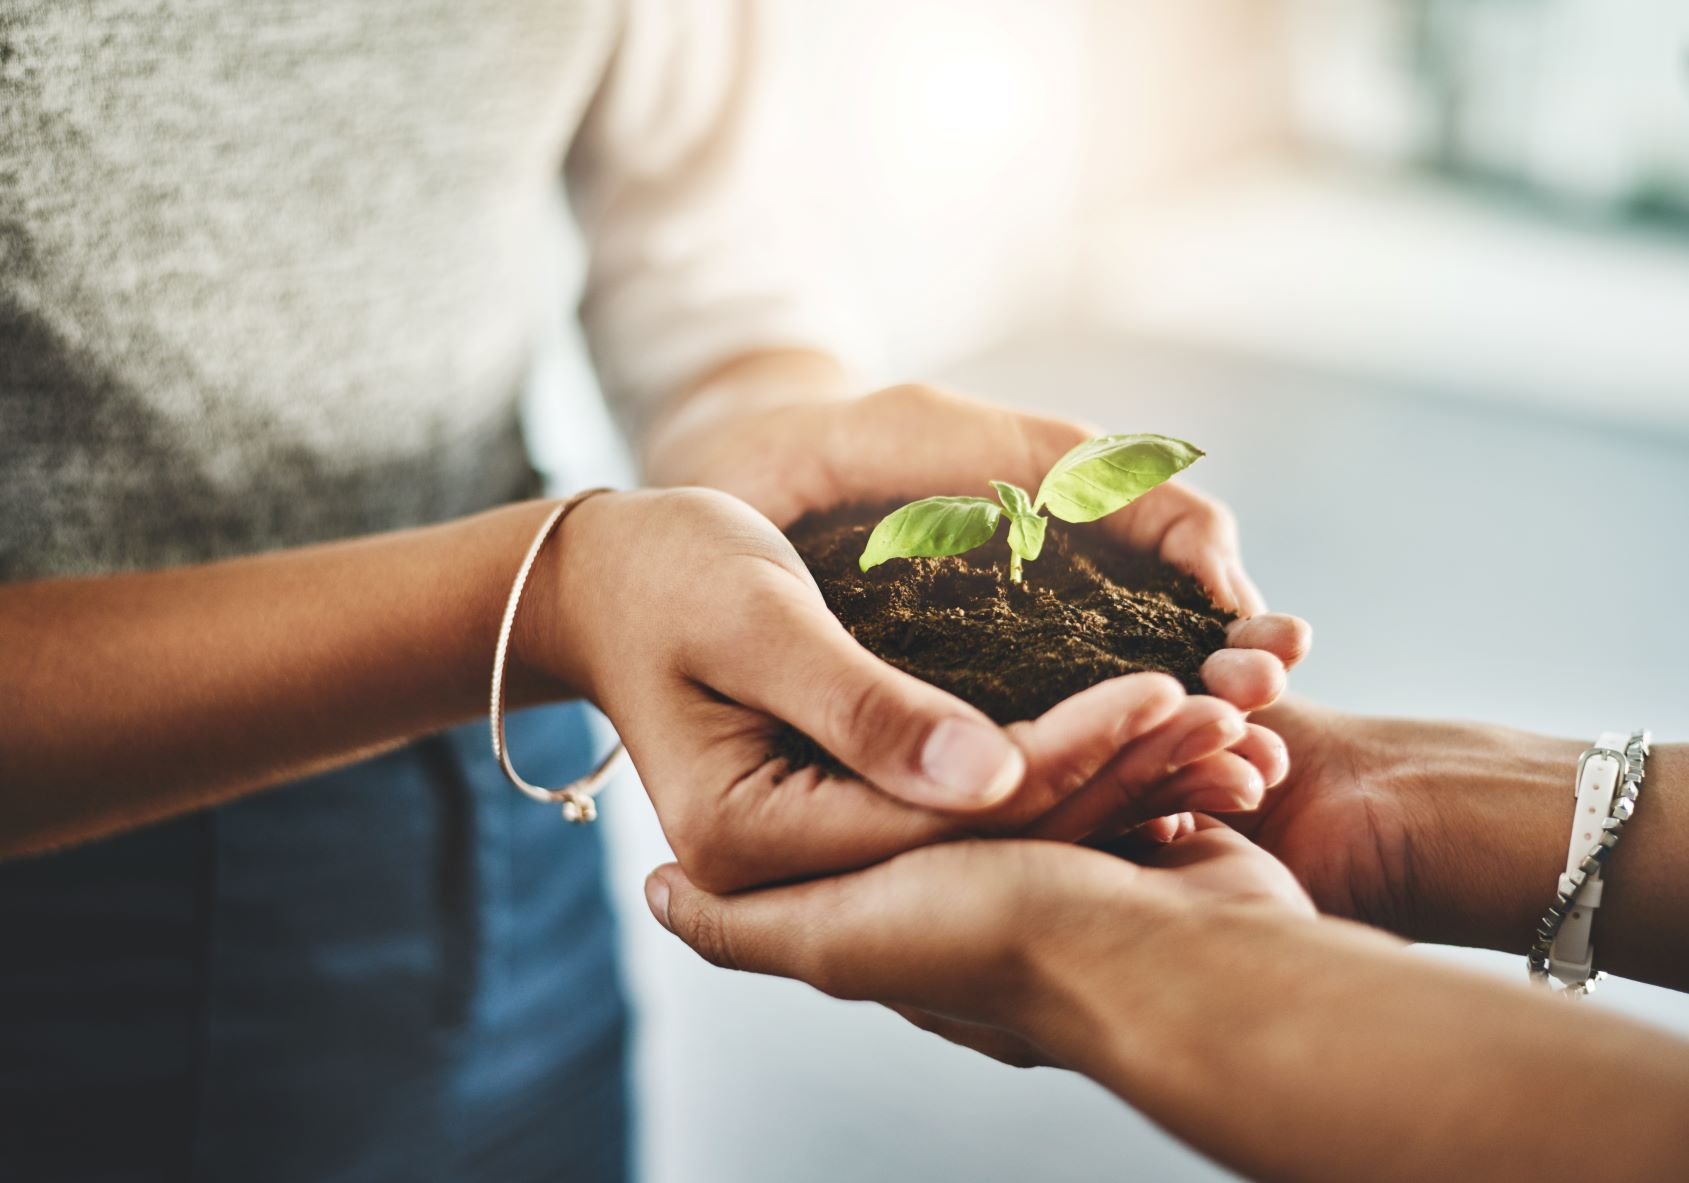 Closeup shot of two unrecognizable people holding a plant growing out of soil